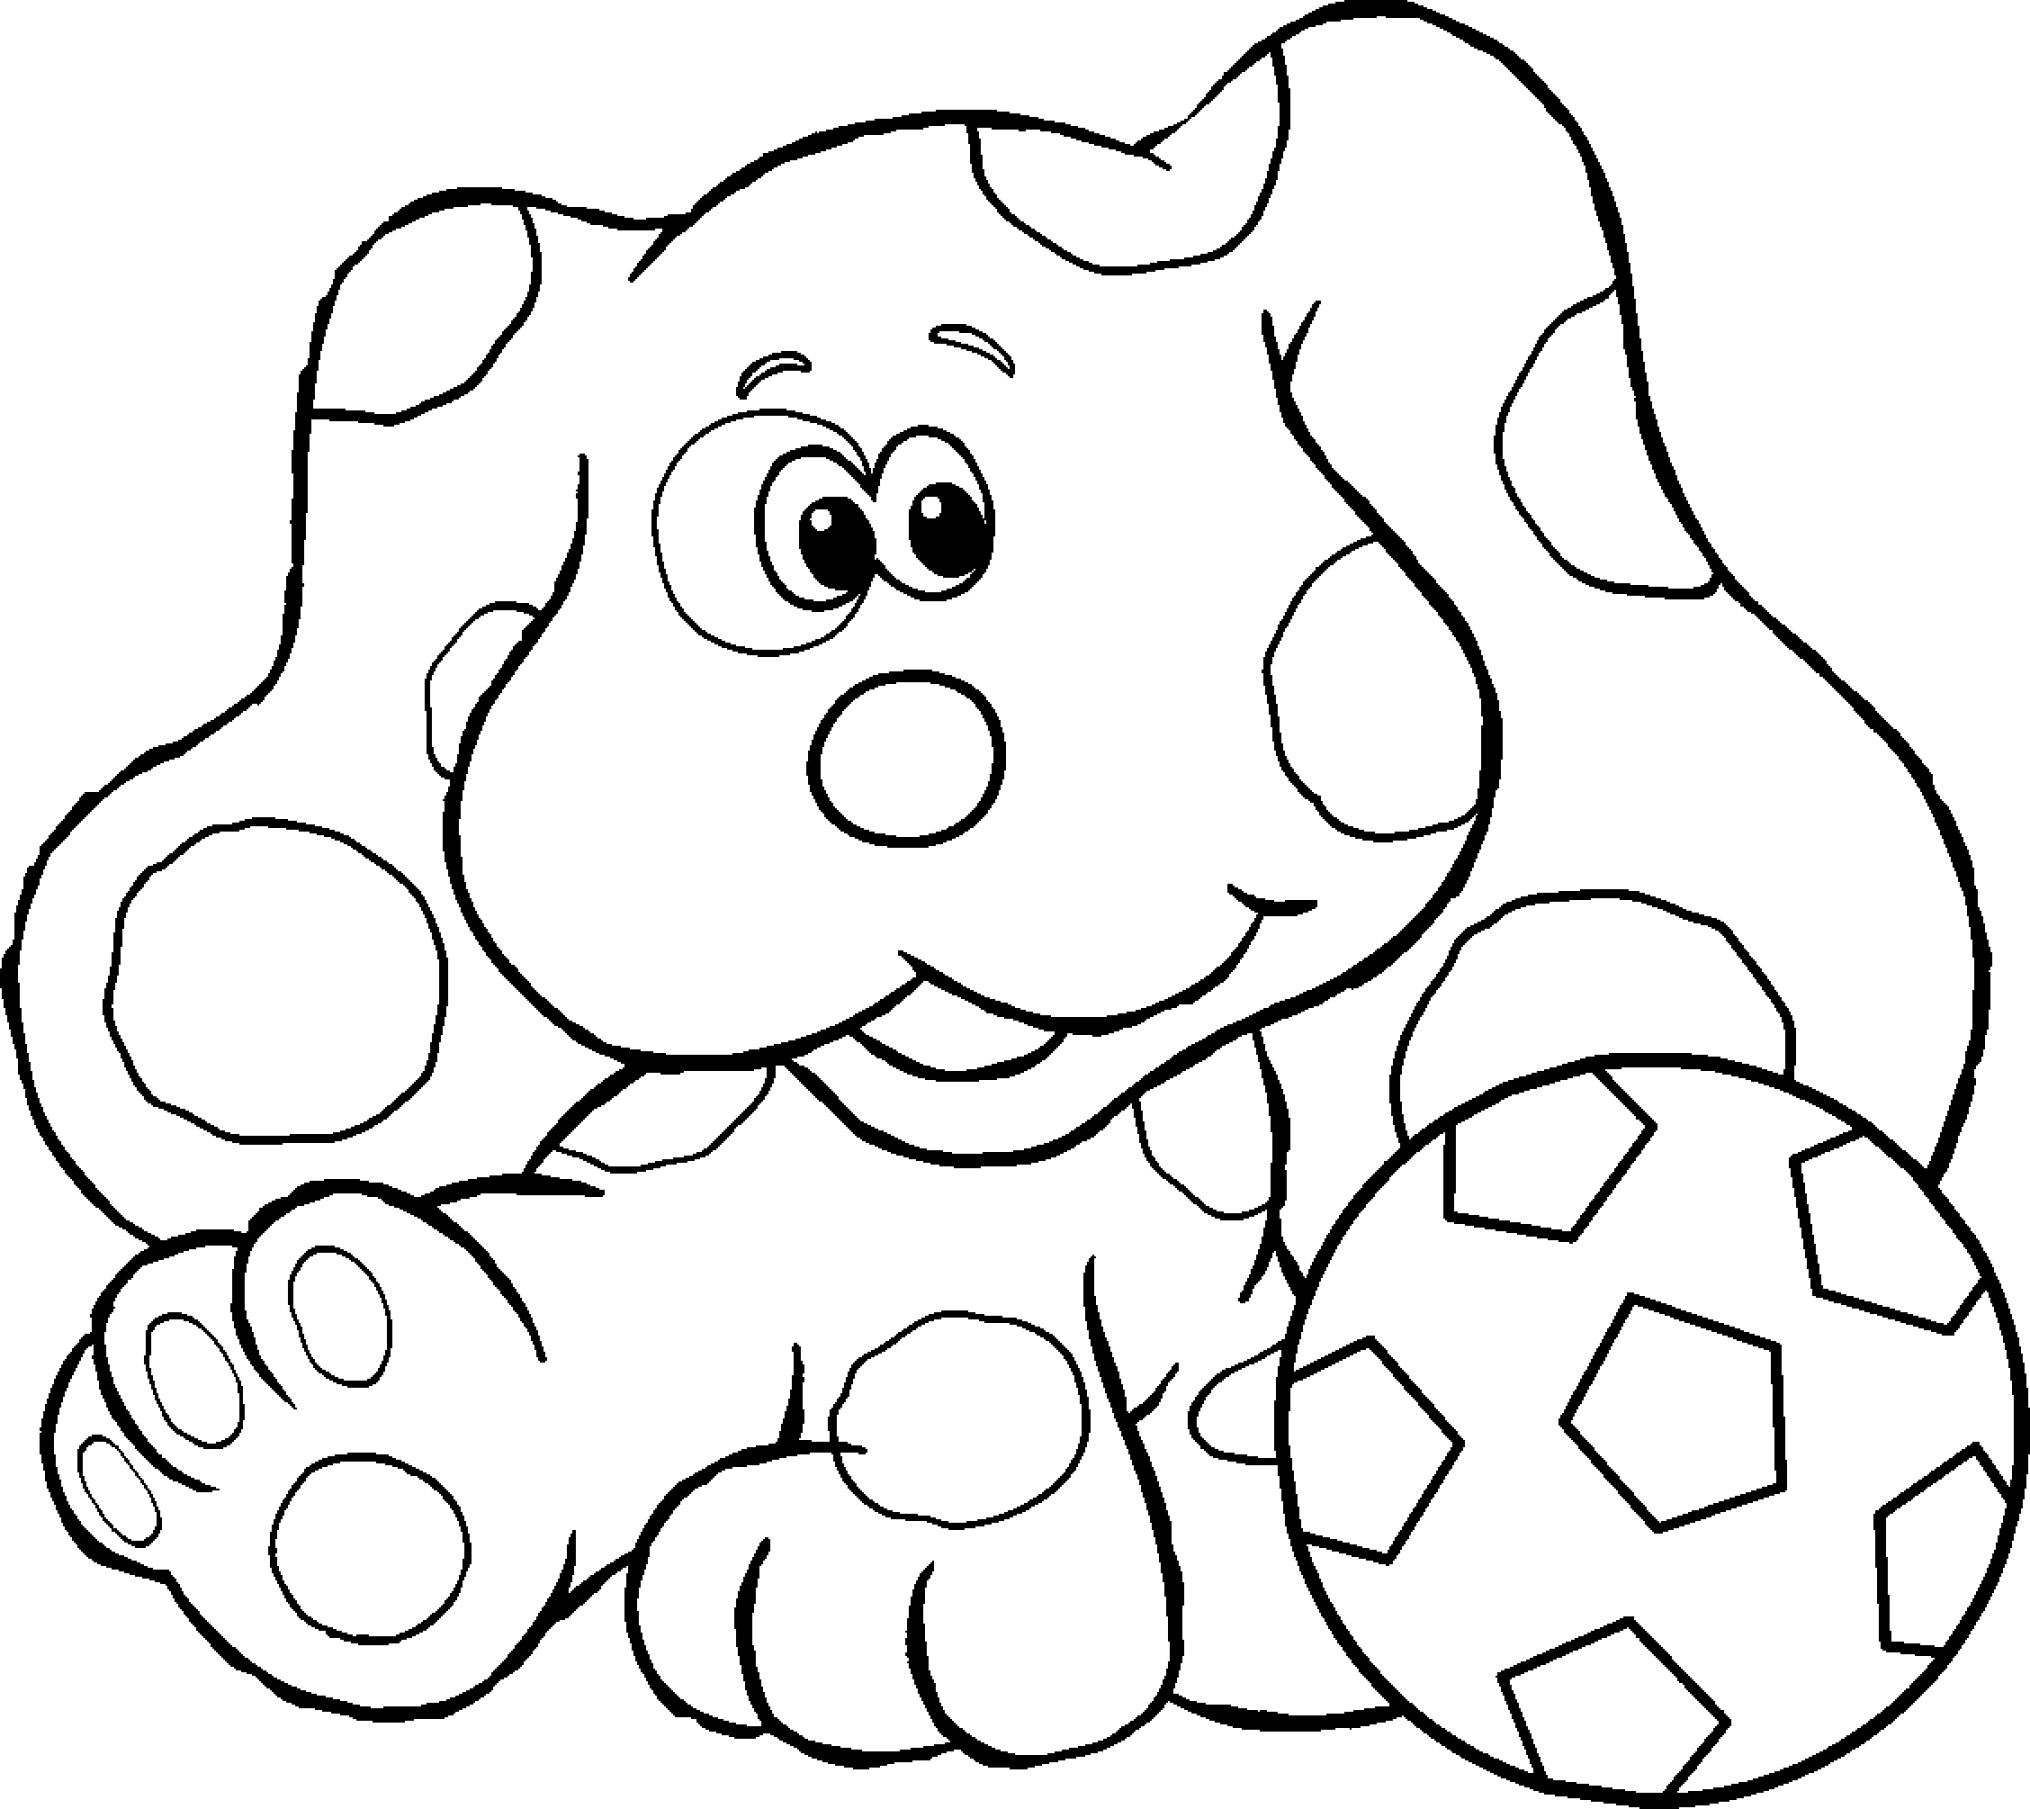 blues clues coloring book free printable blues clues coloring pages for kids clues blues book coloring